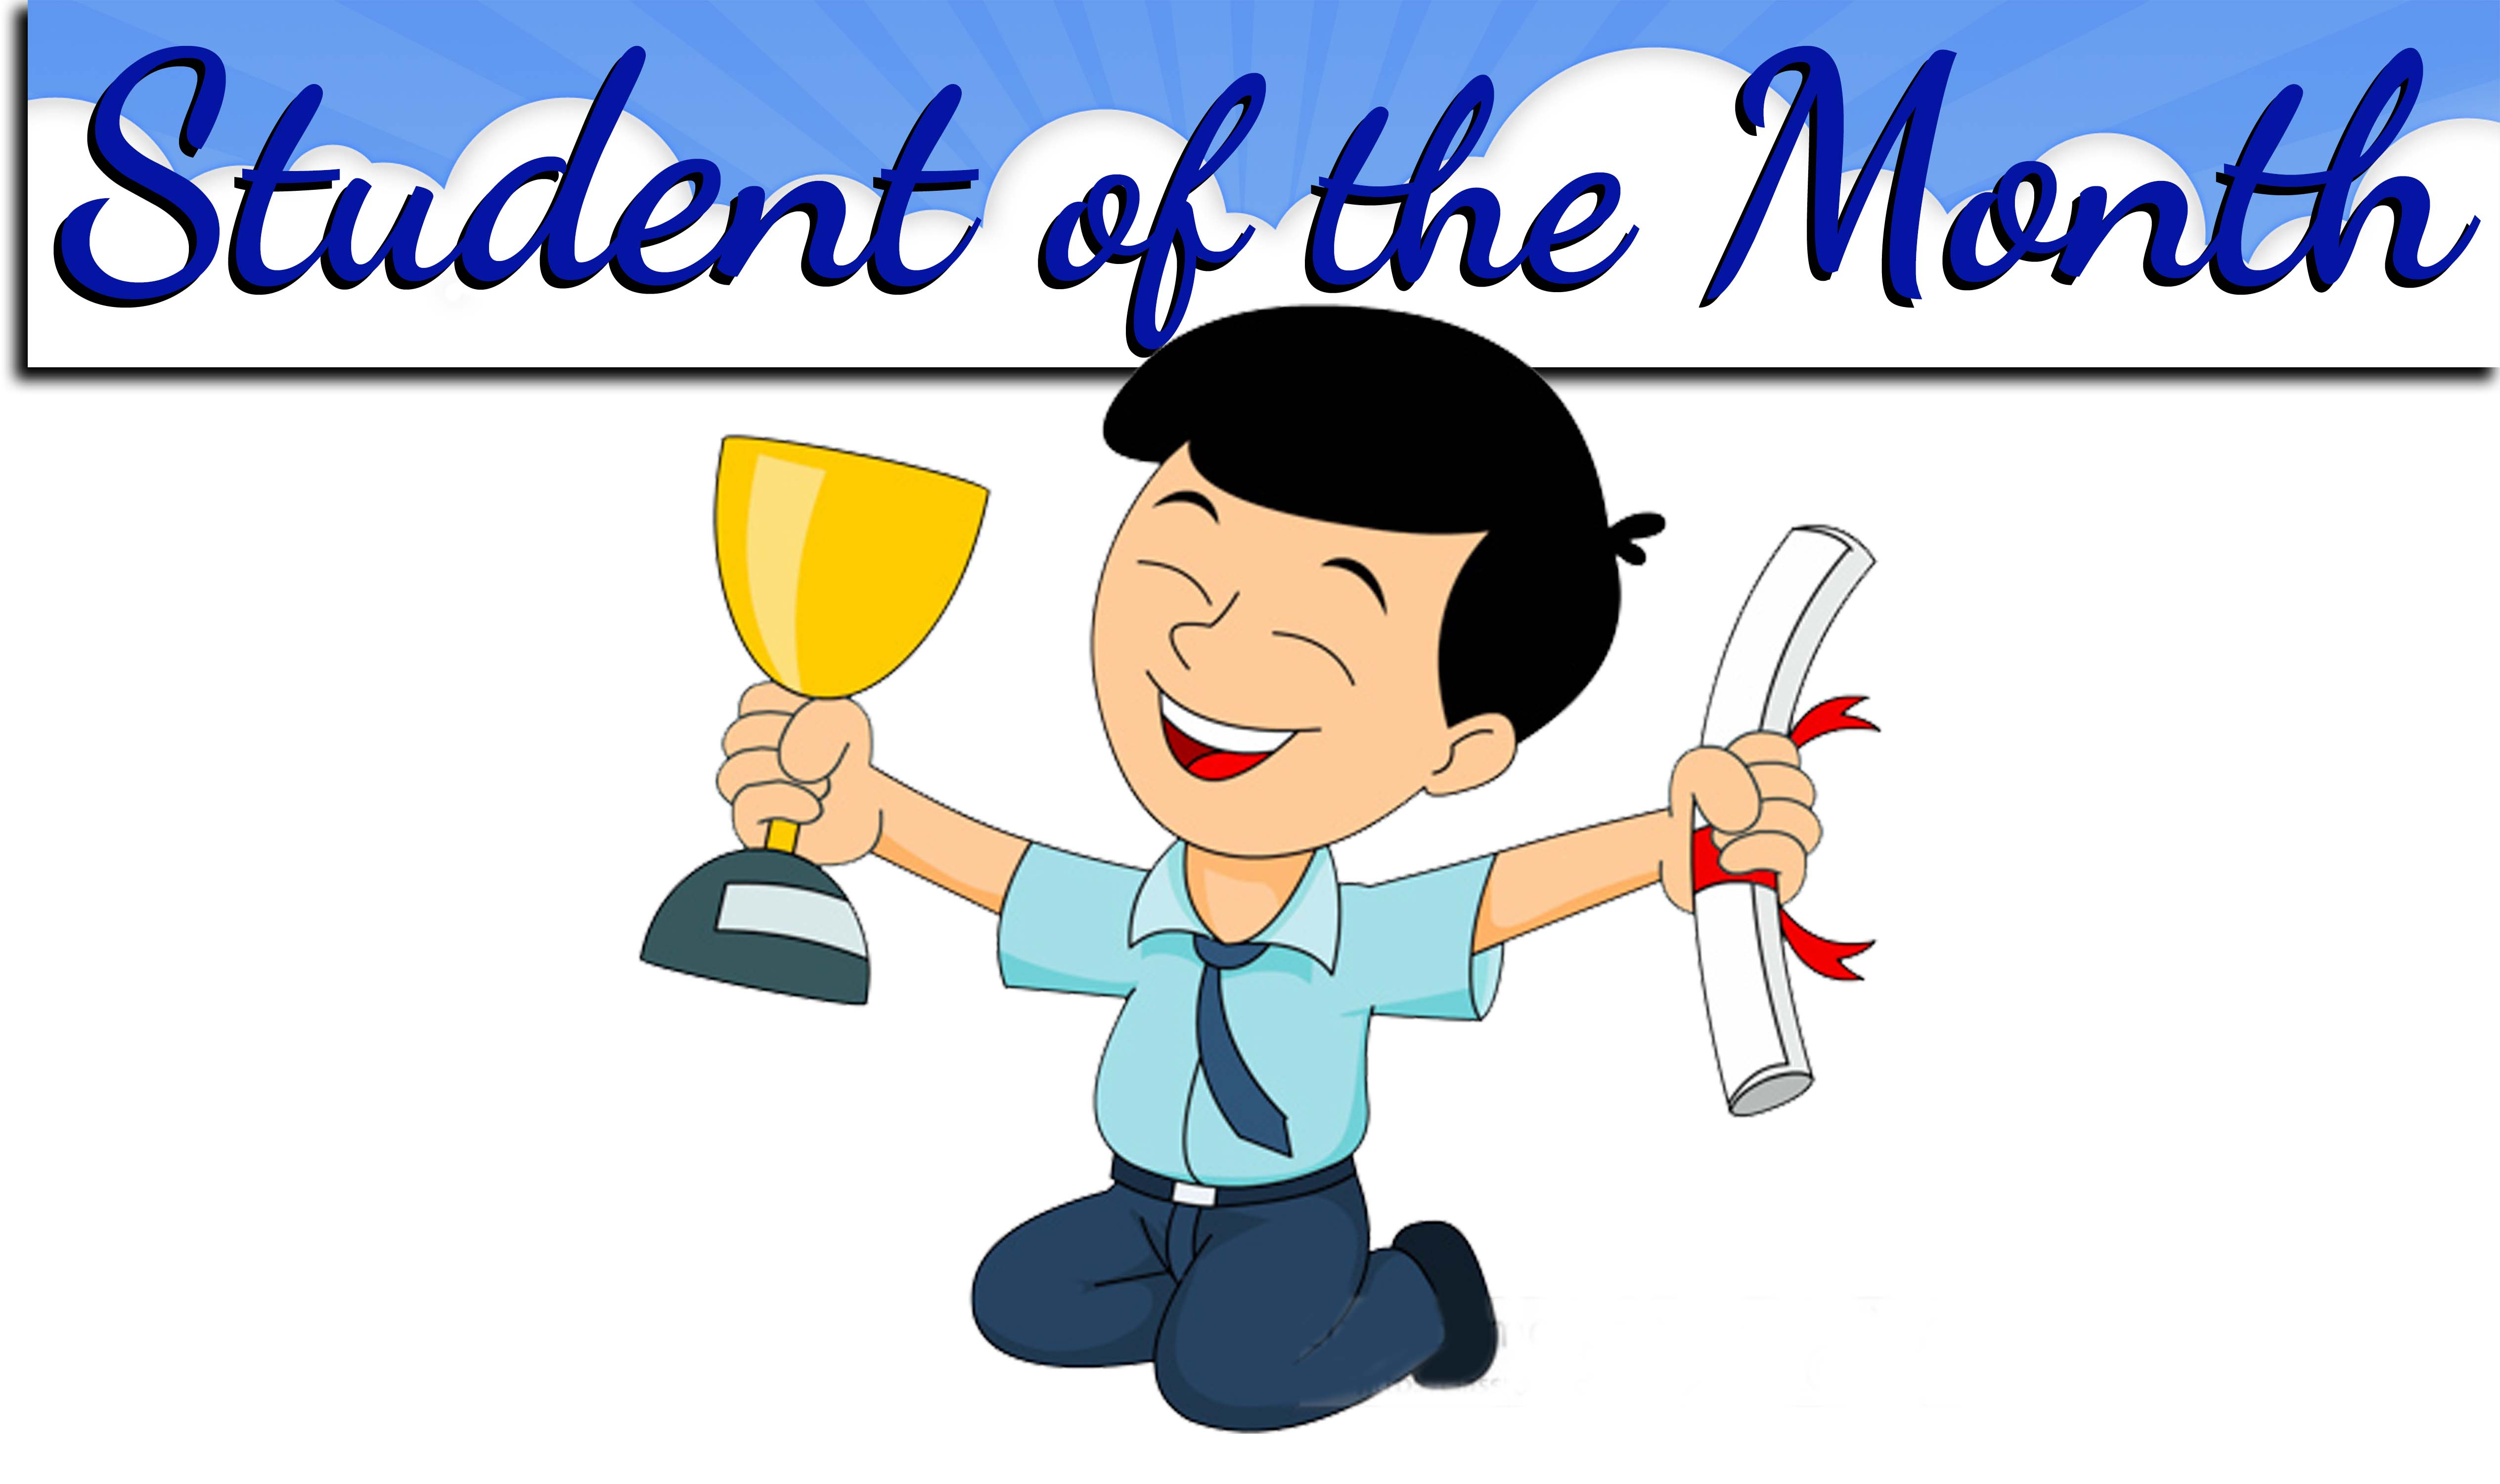 Student of the month clipart freeuse stock Student of the Month   Richmond Heights Middle freeuse stock